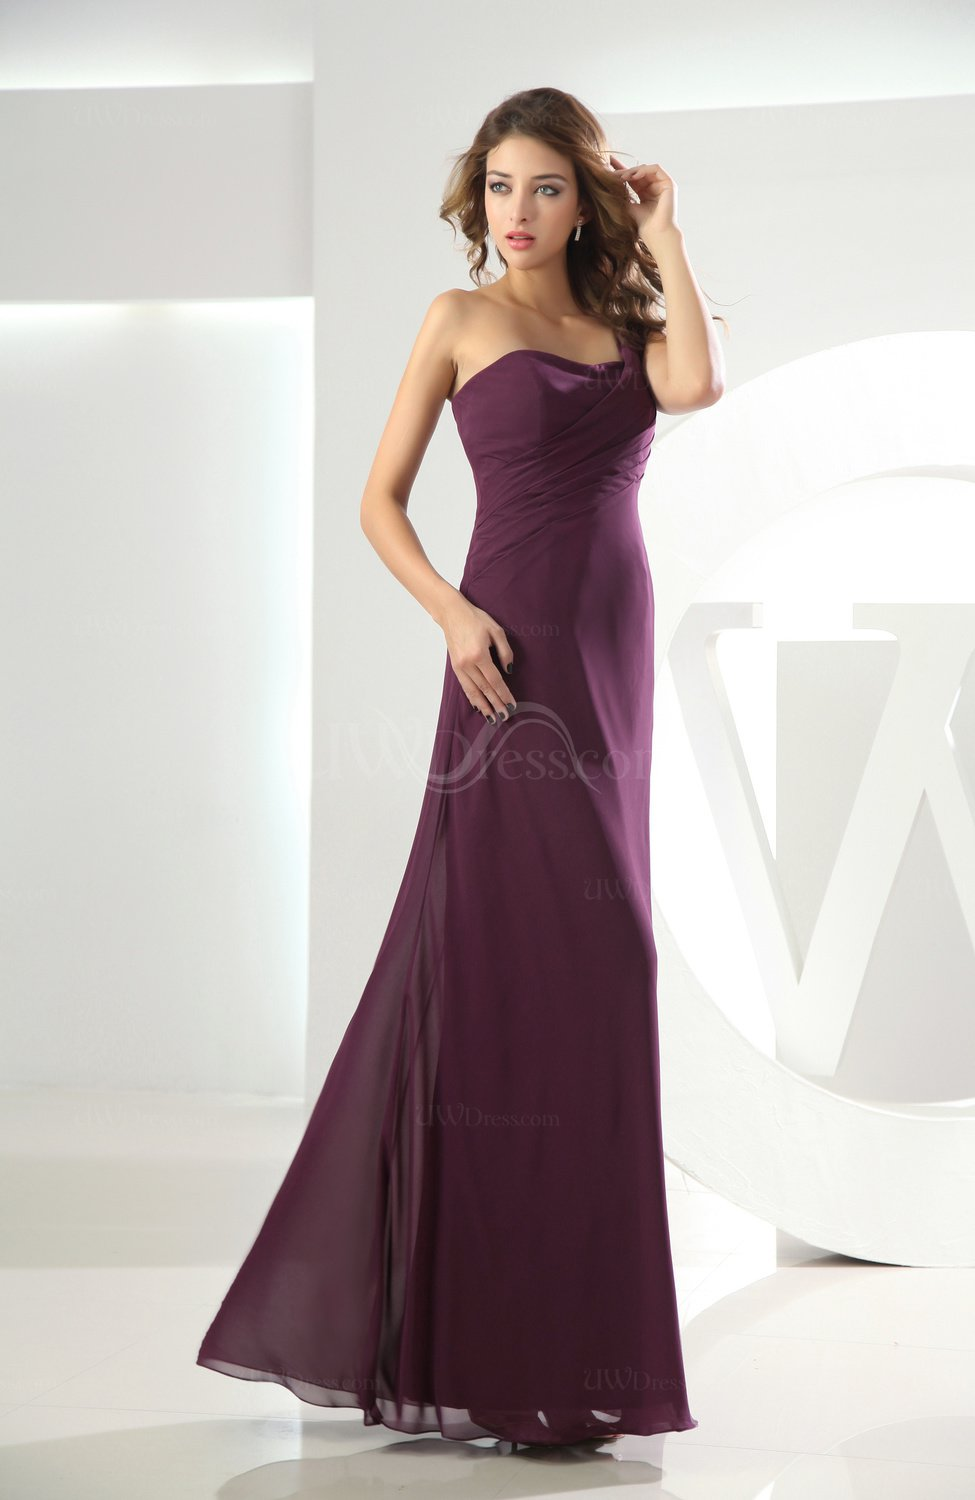 Plum plain one shoulder sleeveless backless chiffon floor for Mid length wedding dress